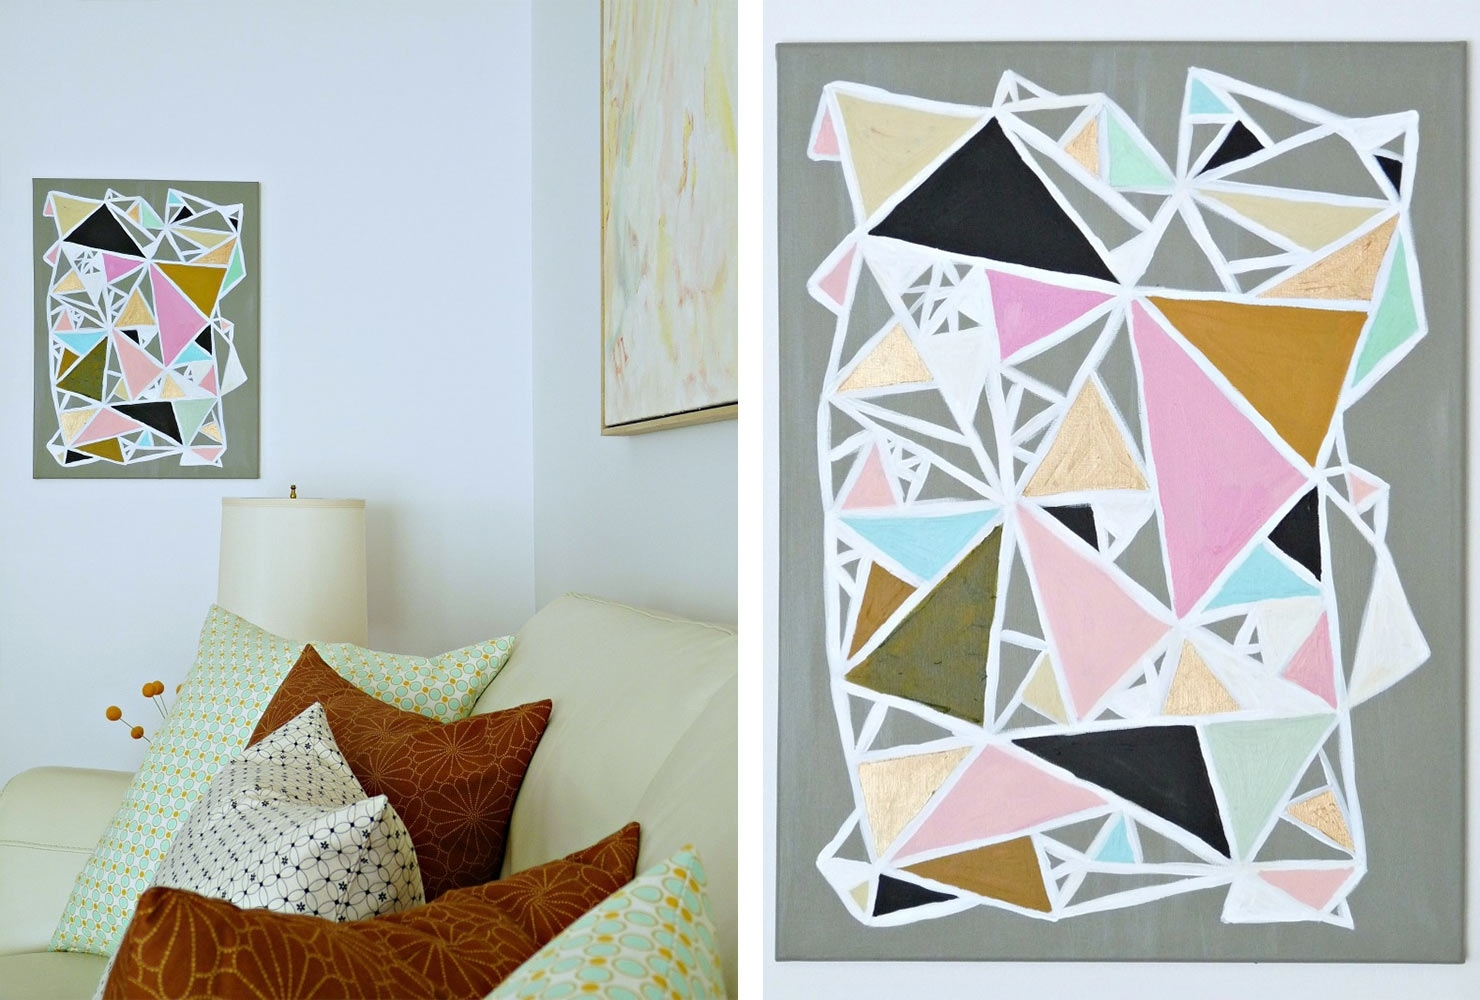 25 Unique Diy Wall Art Ideas (With Printables) | Shutterfly With Regard To Most Recent Diy Wall Art (Gallery 15 of 15)